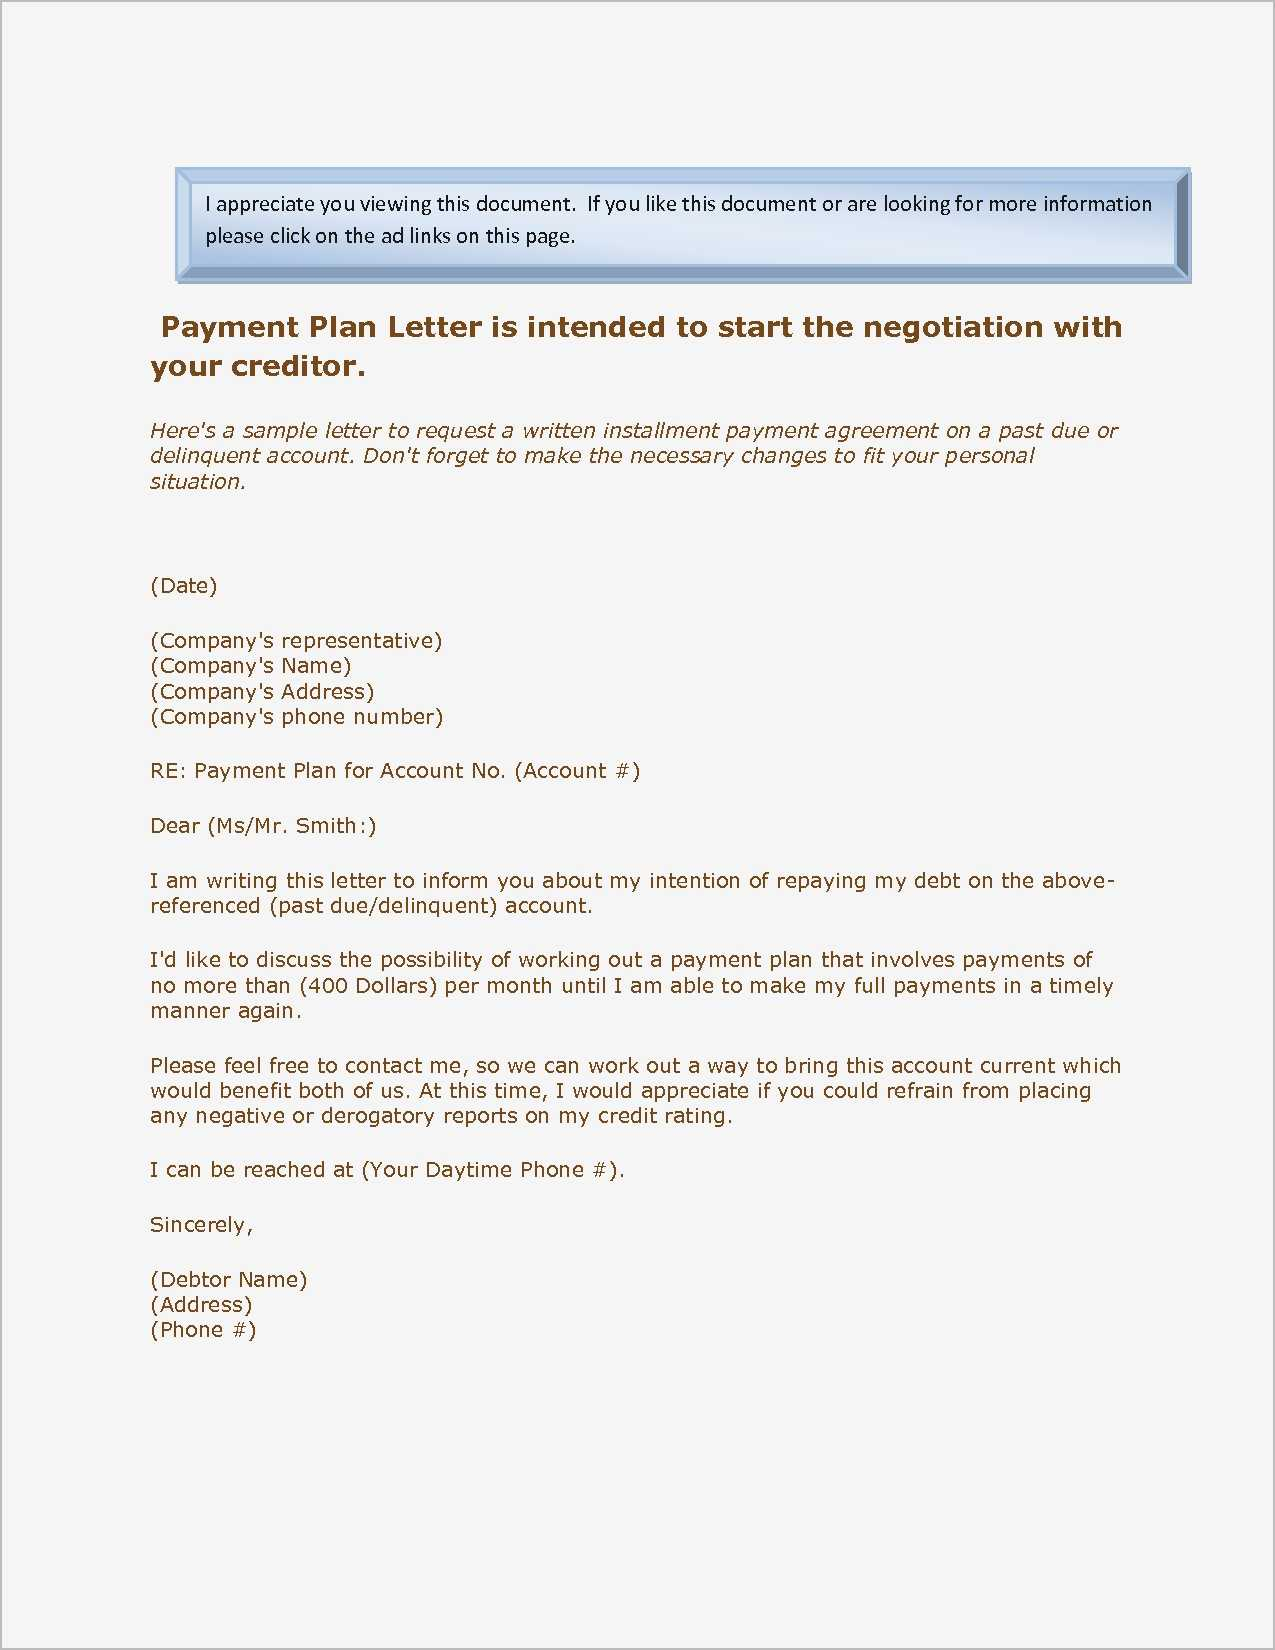 payment plan letter template Collection-Payment Agreement Letter Samples Download by size Handphone Tablet 13-b